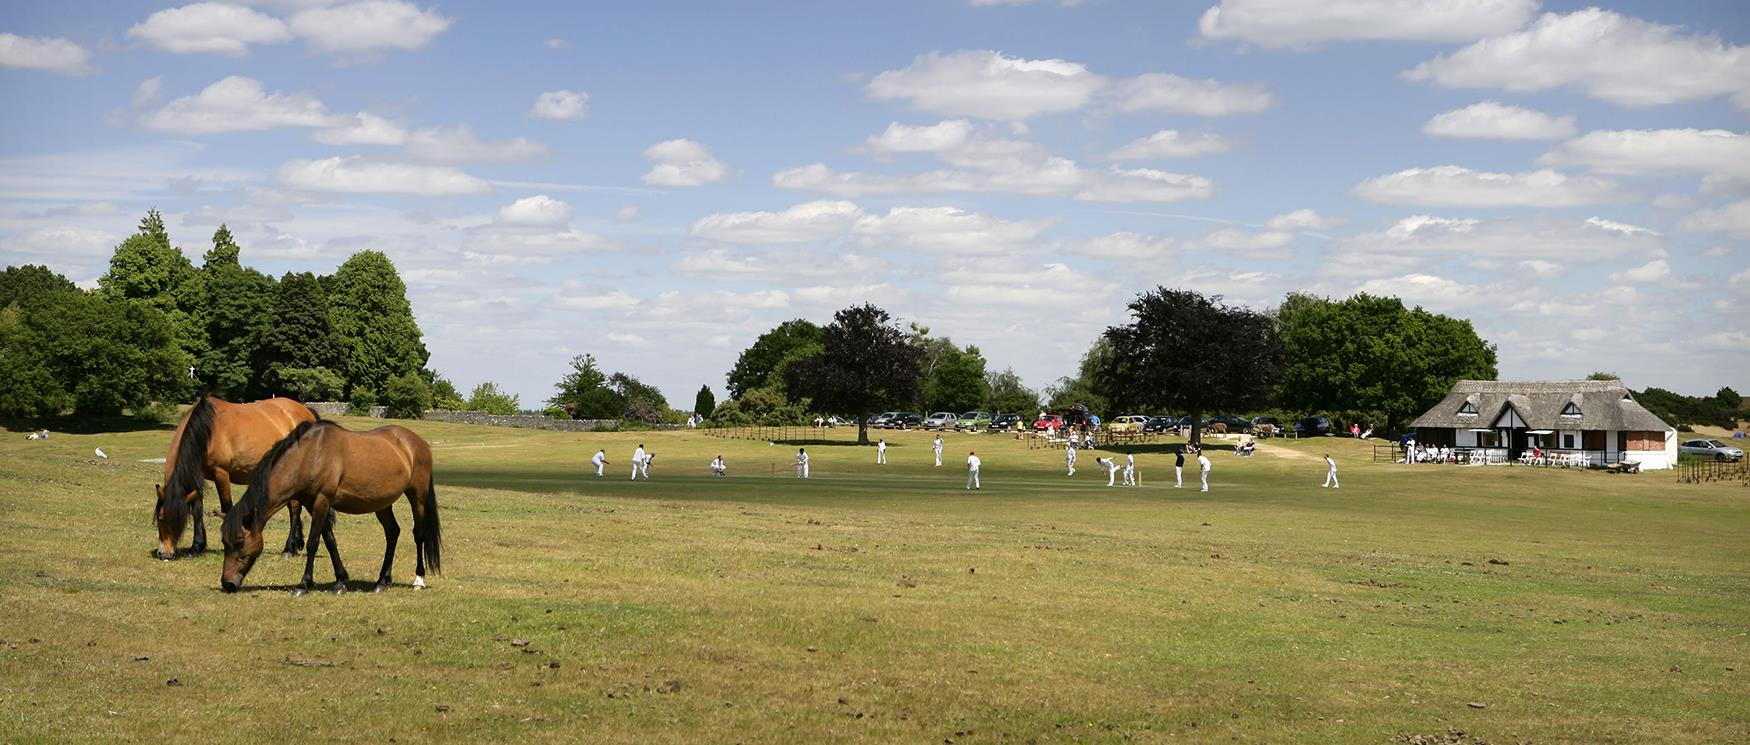 Cricket in the New Forest